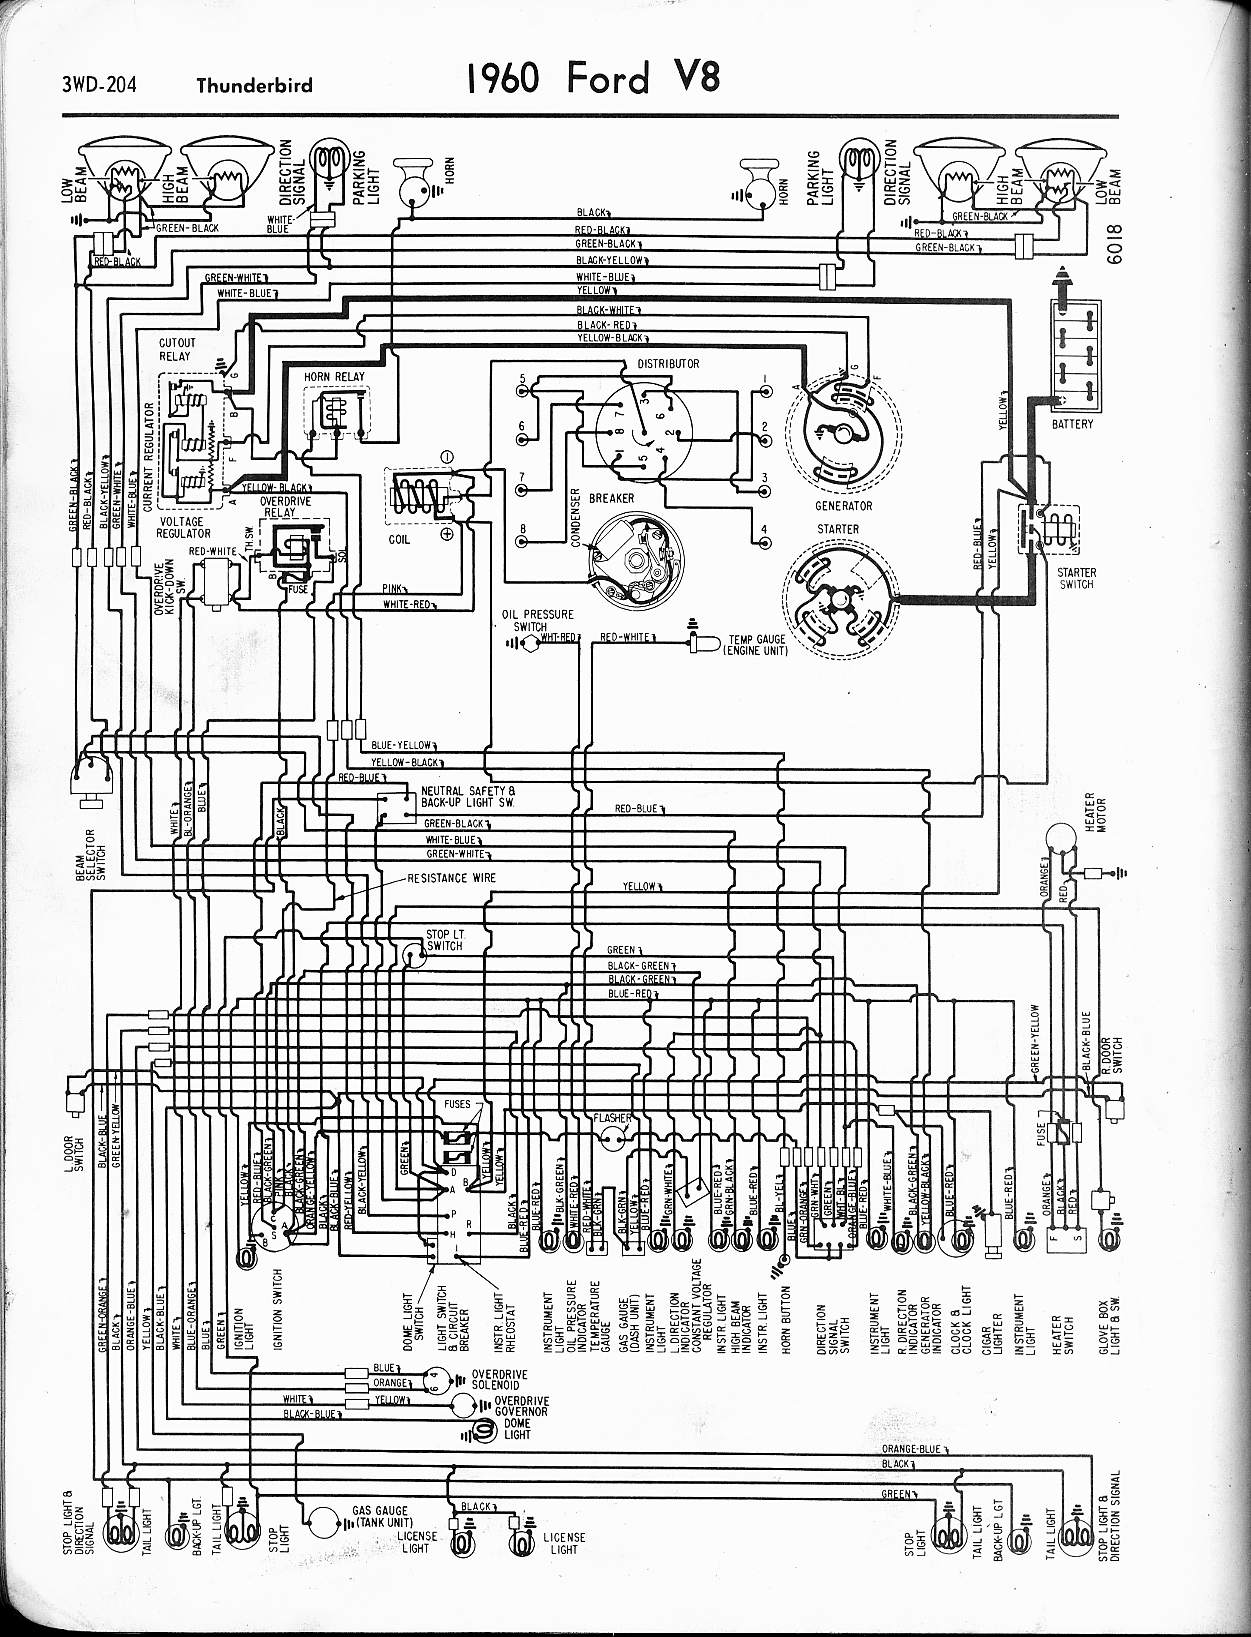 1937 Ford Wiring Diagram Data Porsche Cayenne 2005 Fuse Box Location F100 For A Truck On 1948 Buick 1931 Model